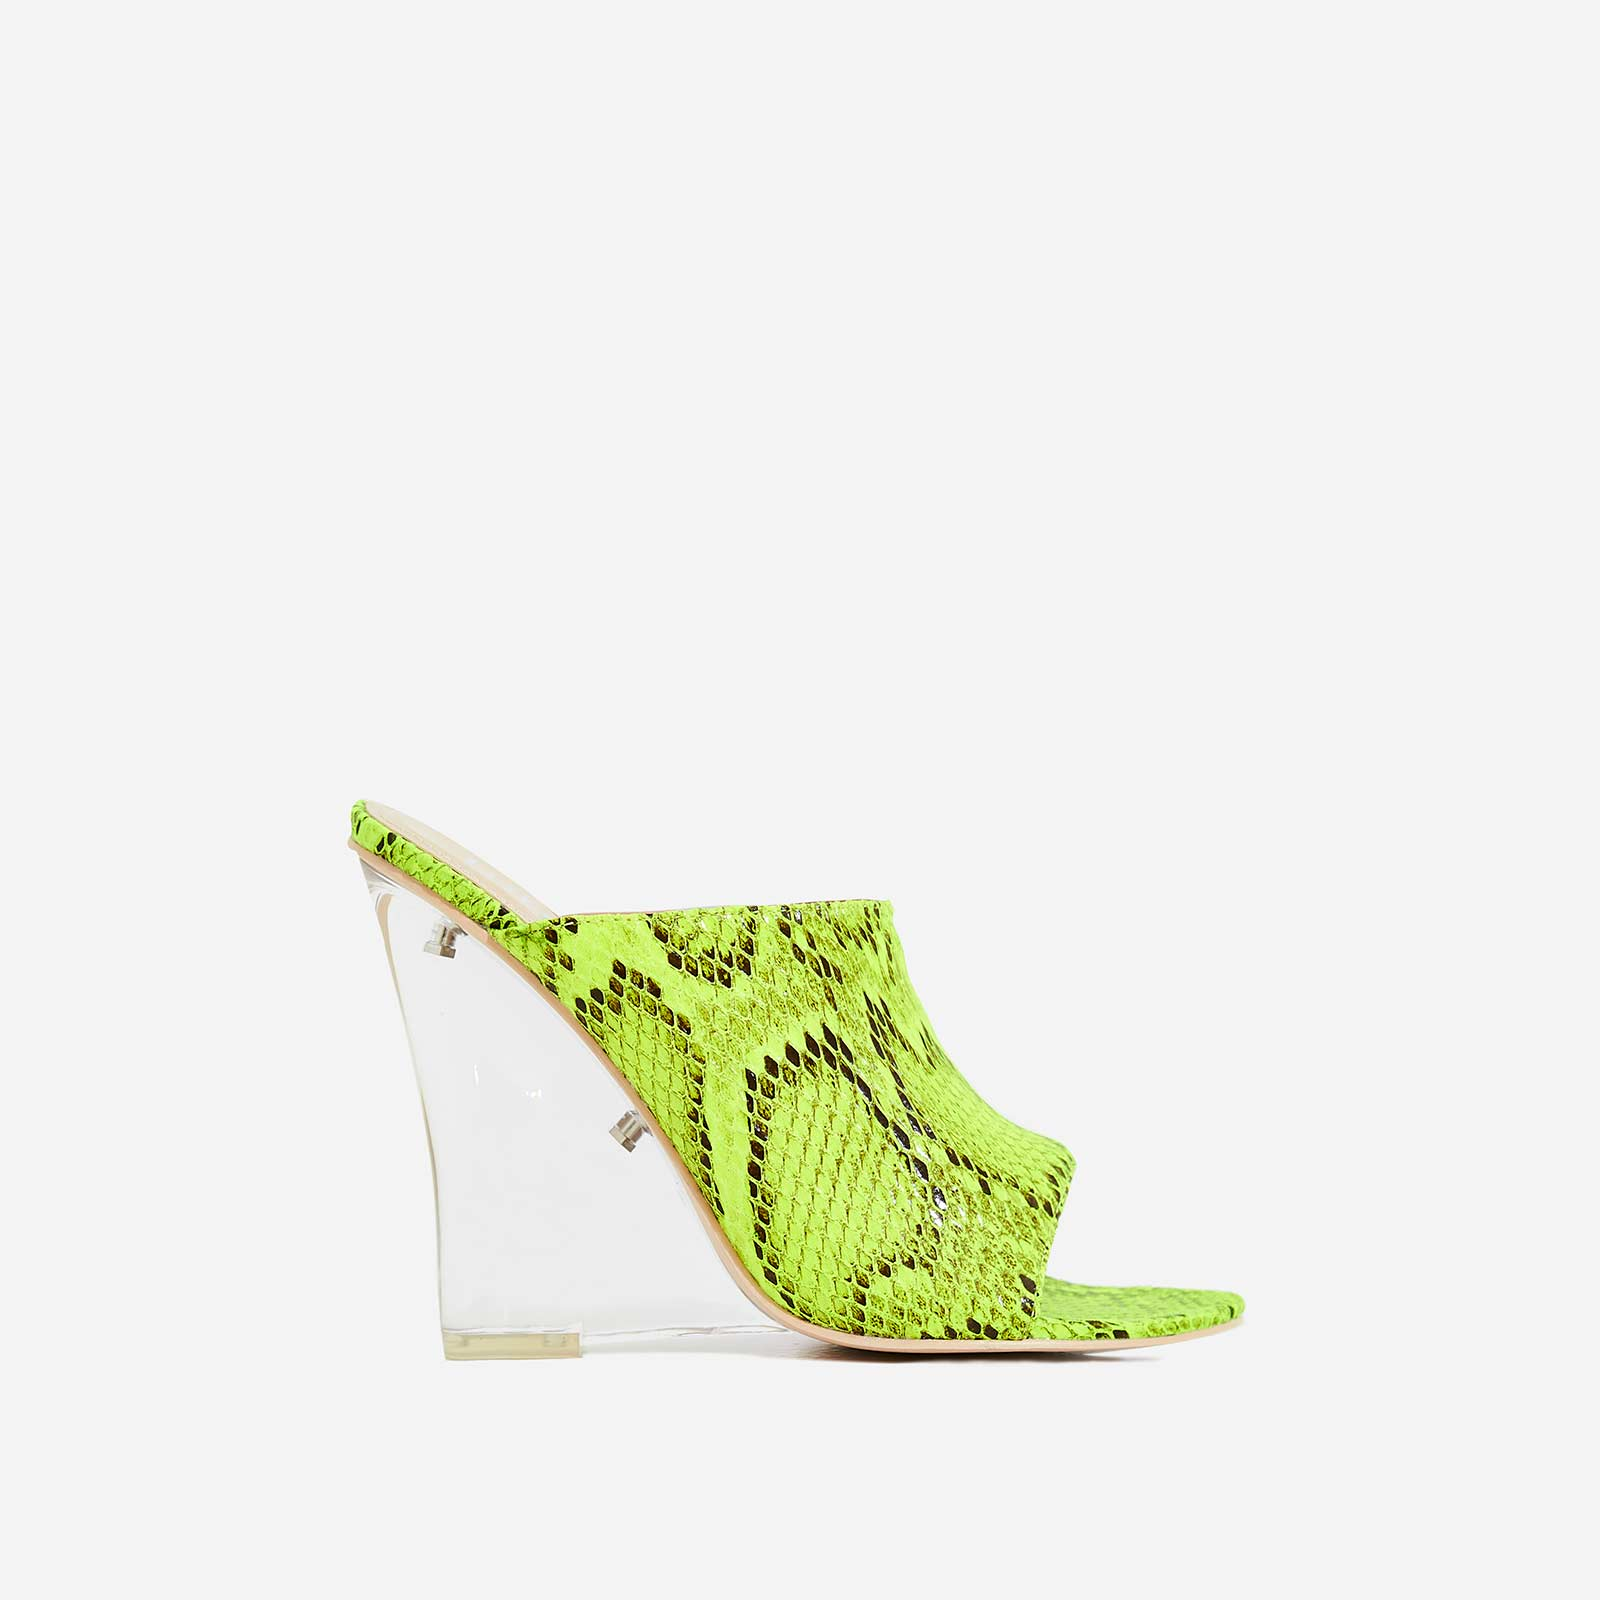 Candy Perspex Wedge Peep Toe Mule In Lime Green Snake Print Faux Leather